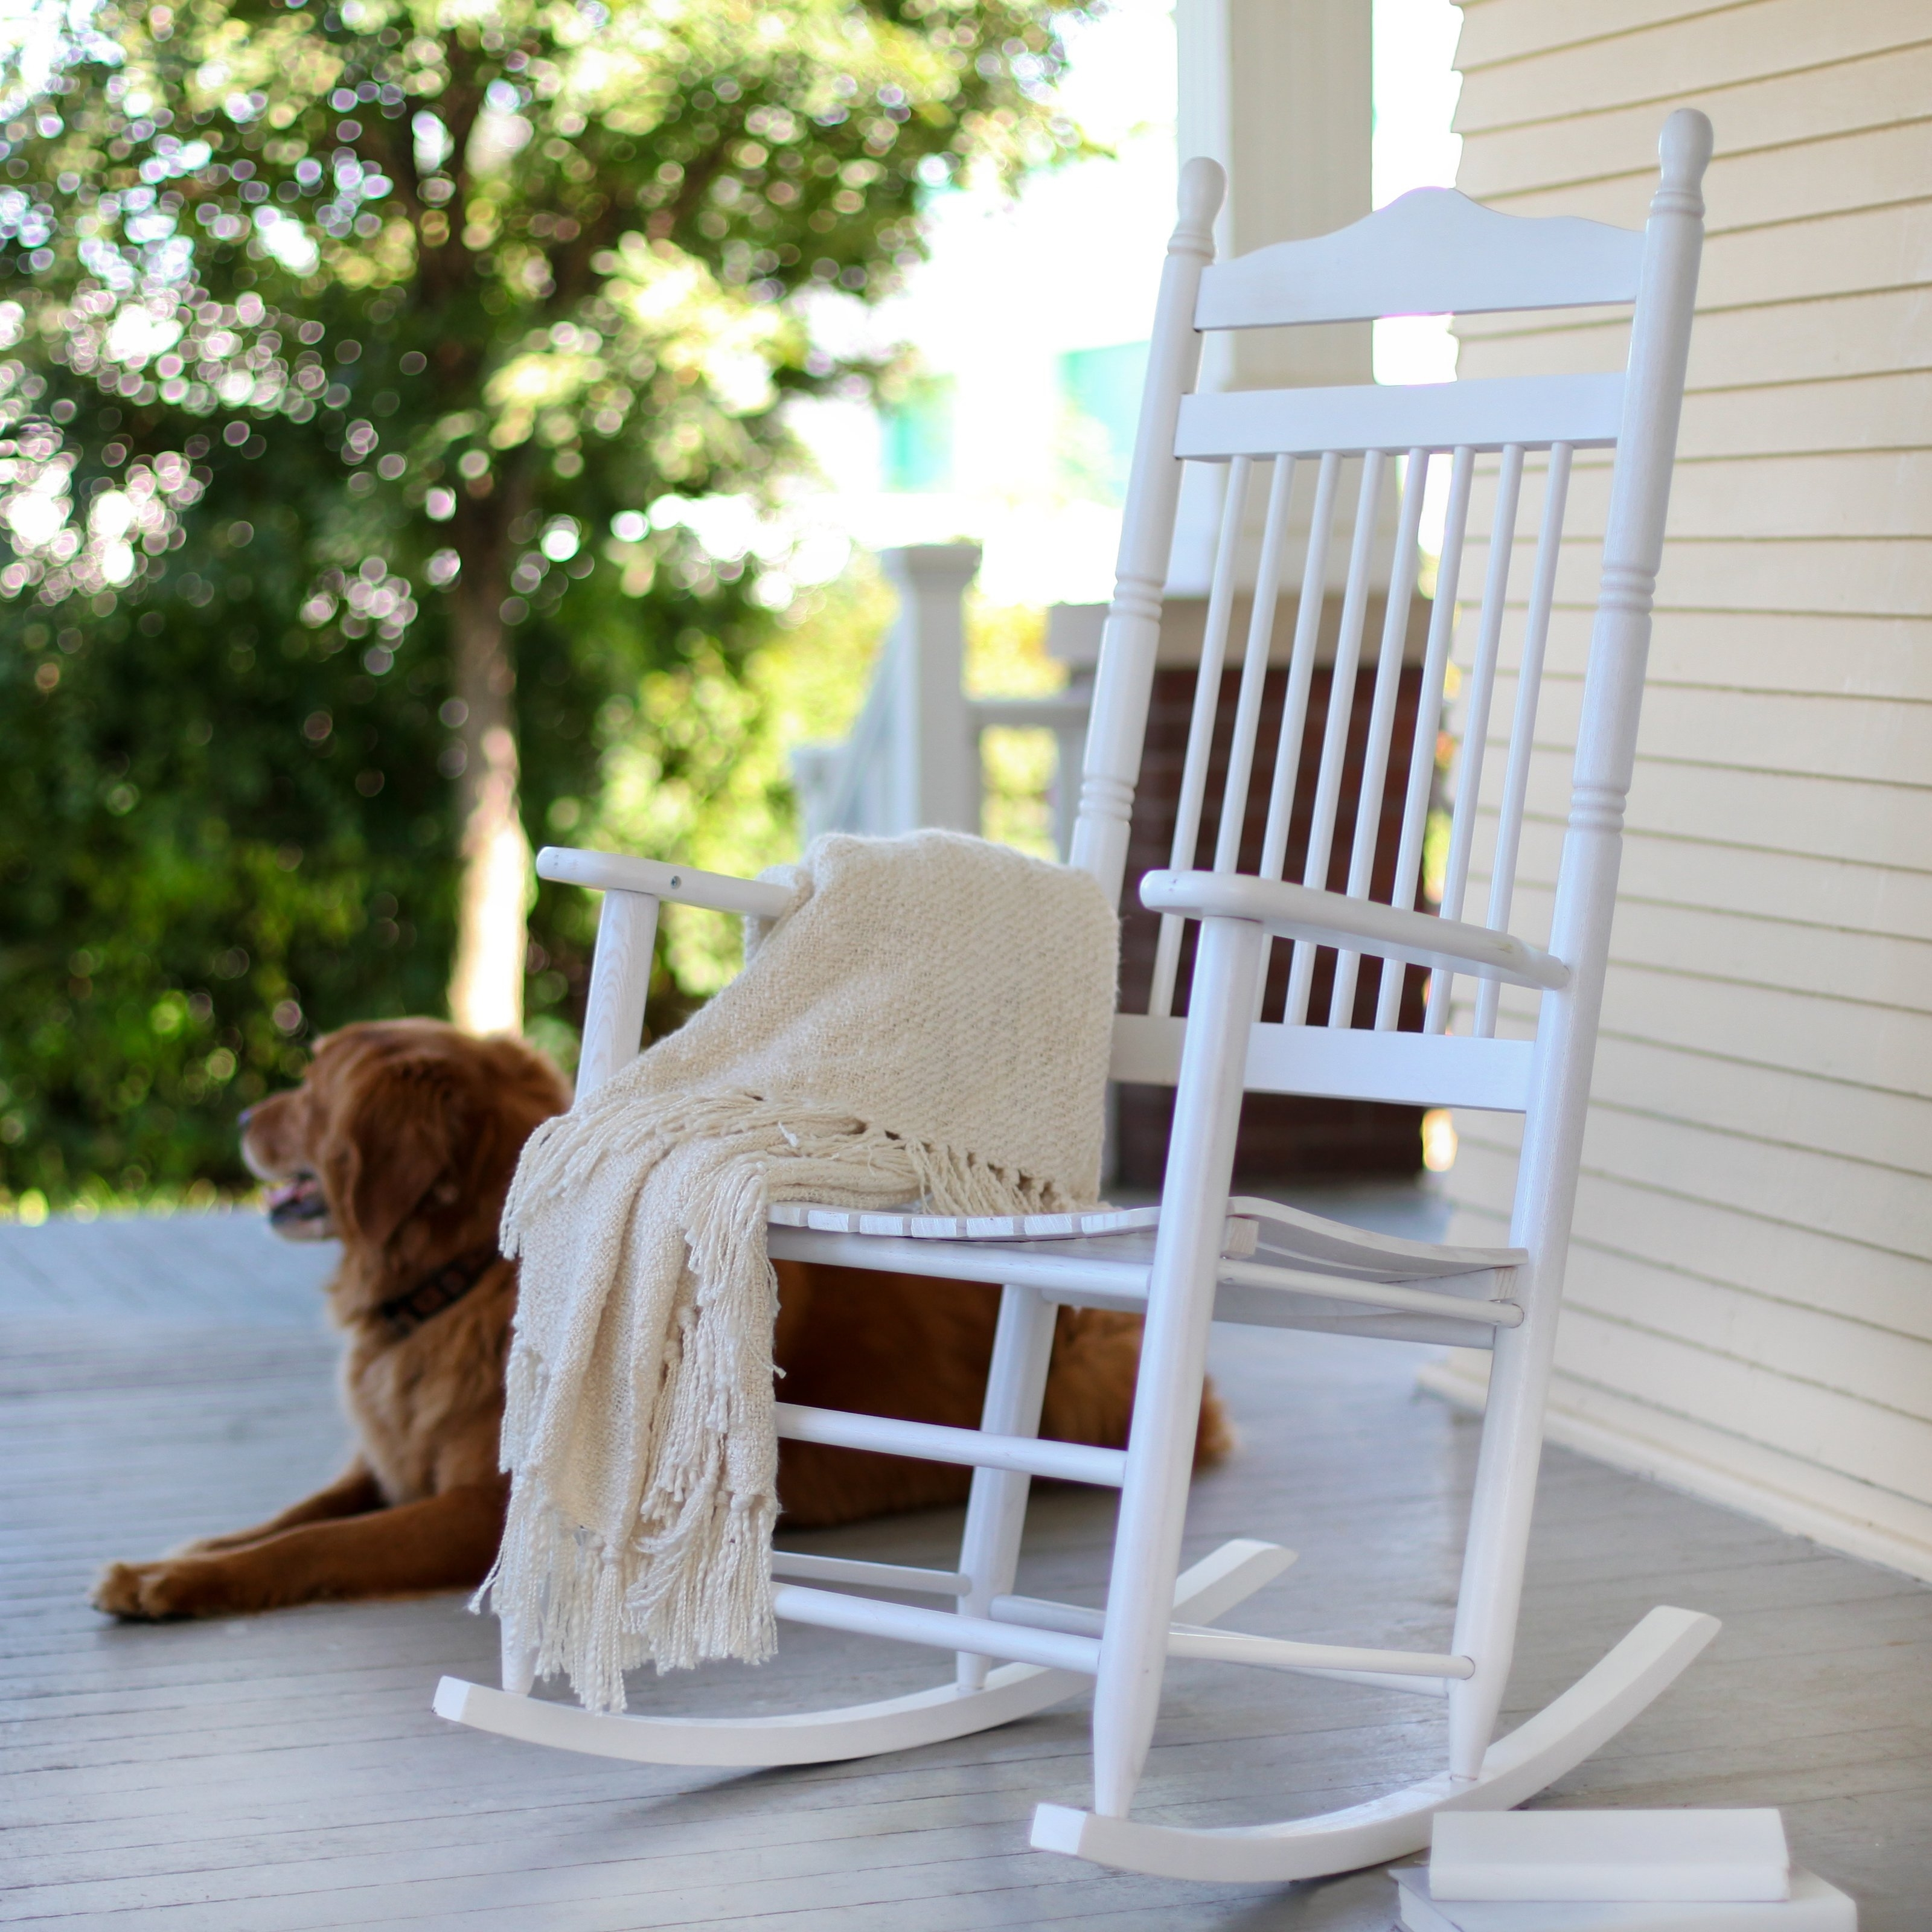 Favorite Excellent Porch Rocking Chair For Small Home Remodel Ideas With Intended For Small Patio Rocking Chairs (View 1 of 15)